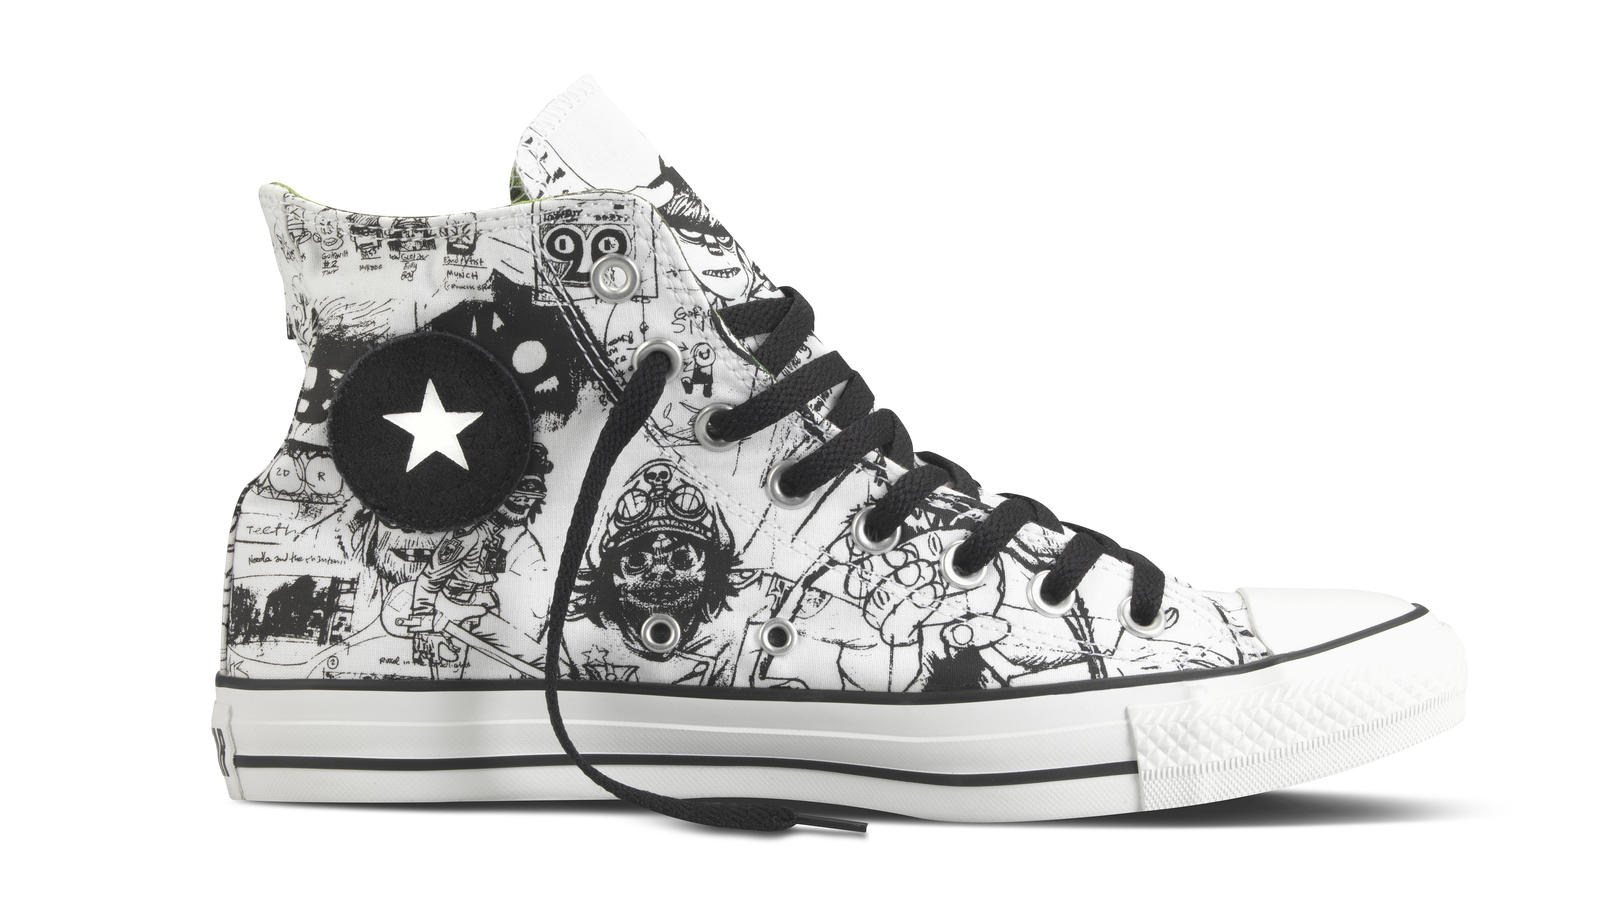 6a7cc6be3d5b00 Converse Unveils Spring 2012 Footwear Collection With Virtual Band ...